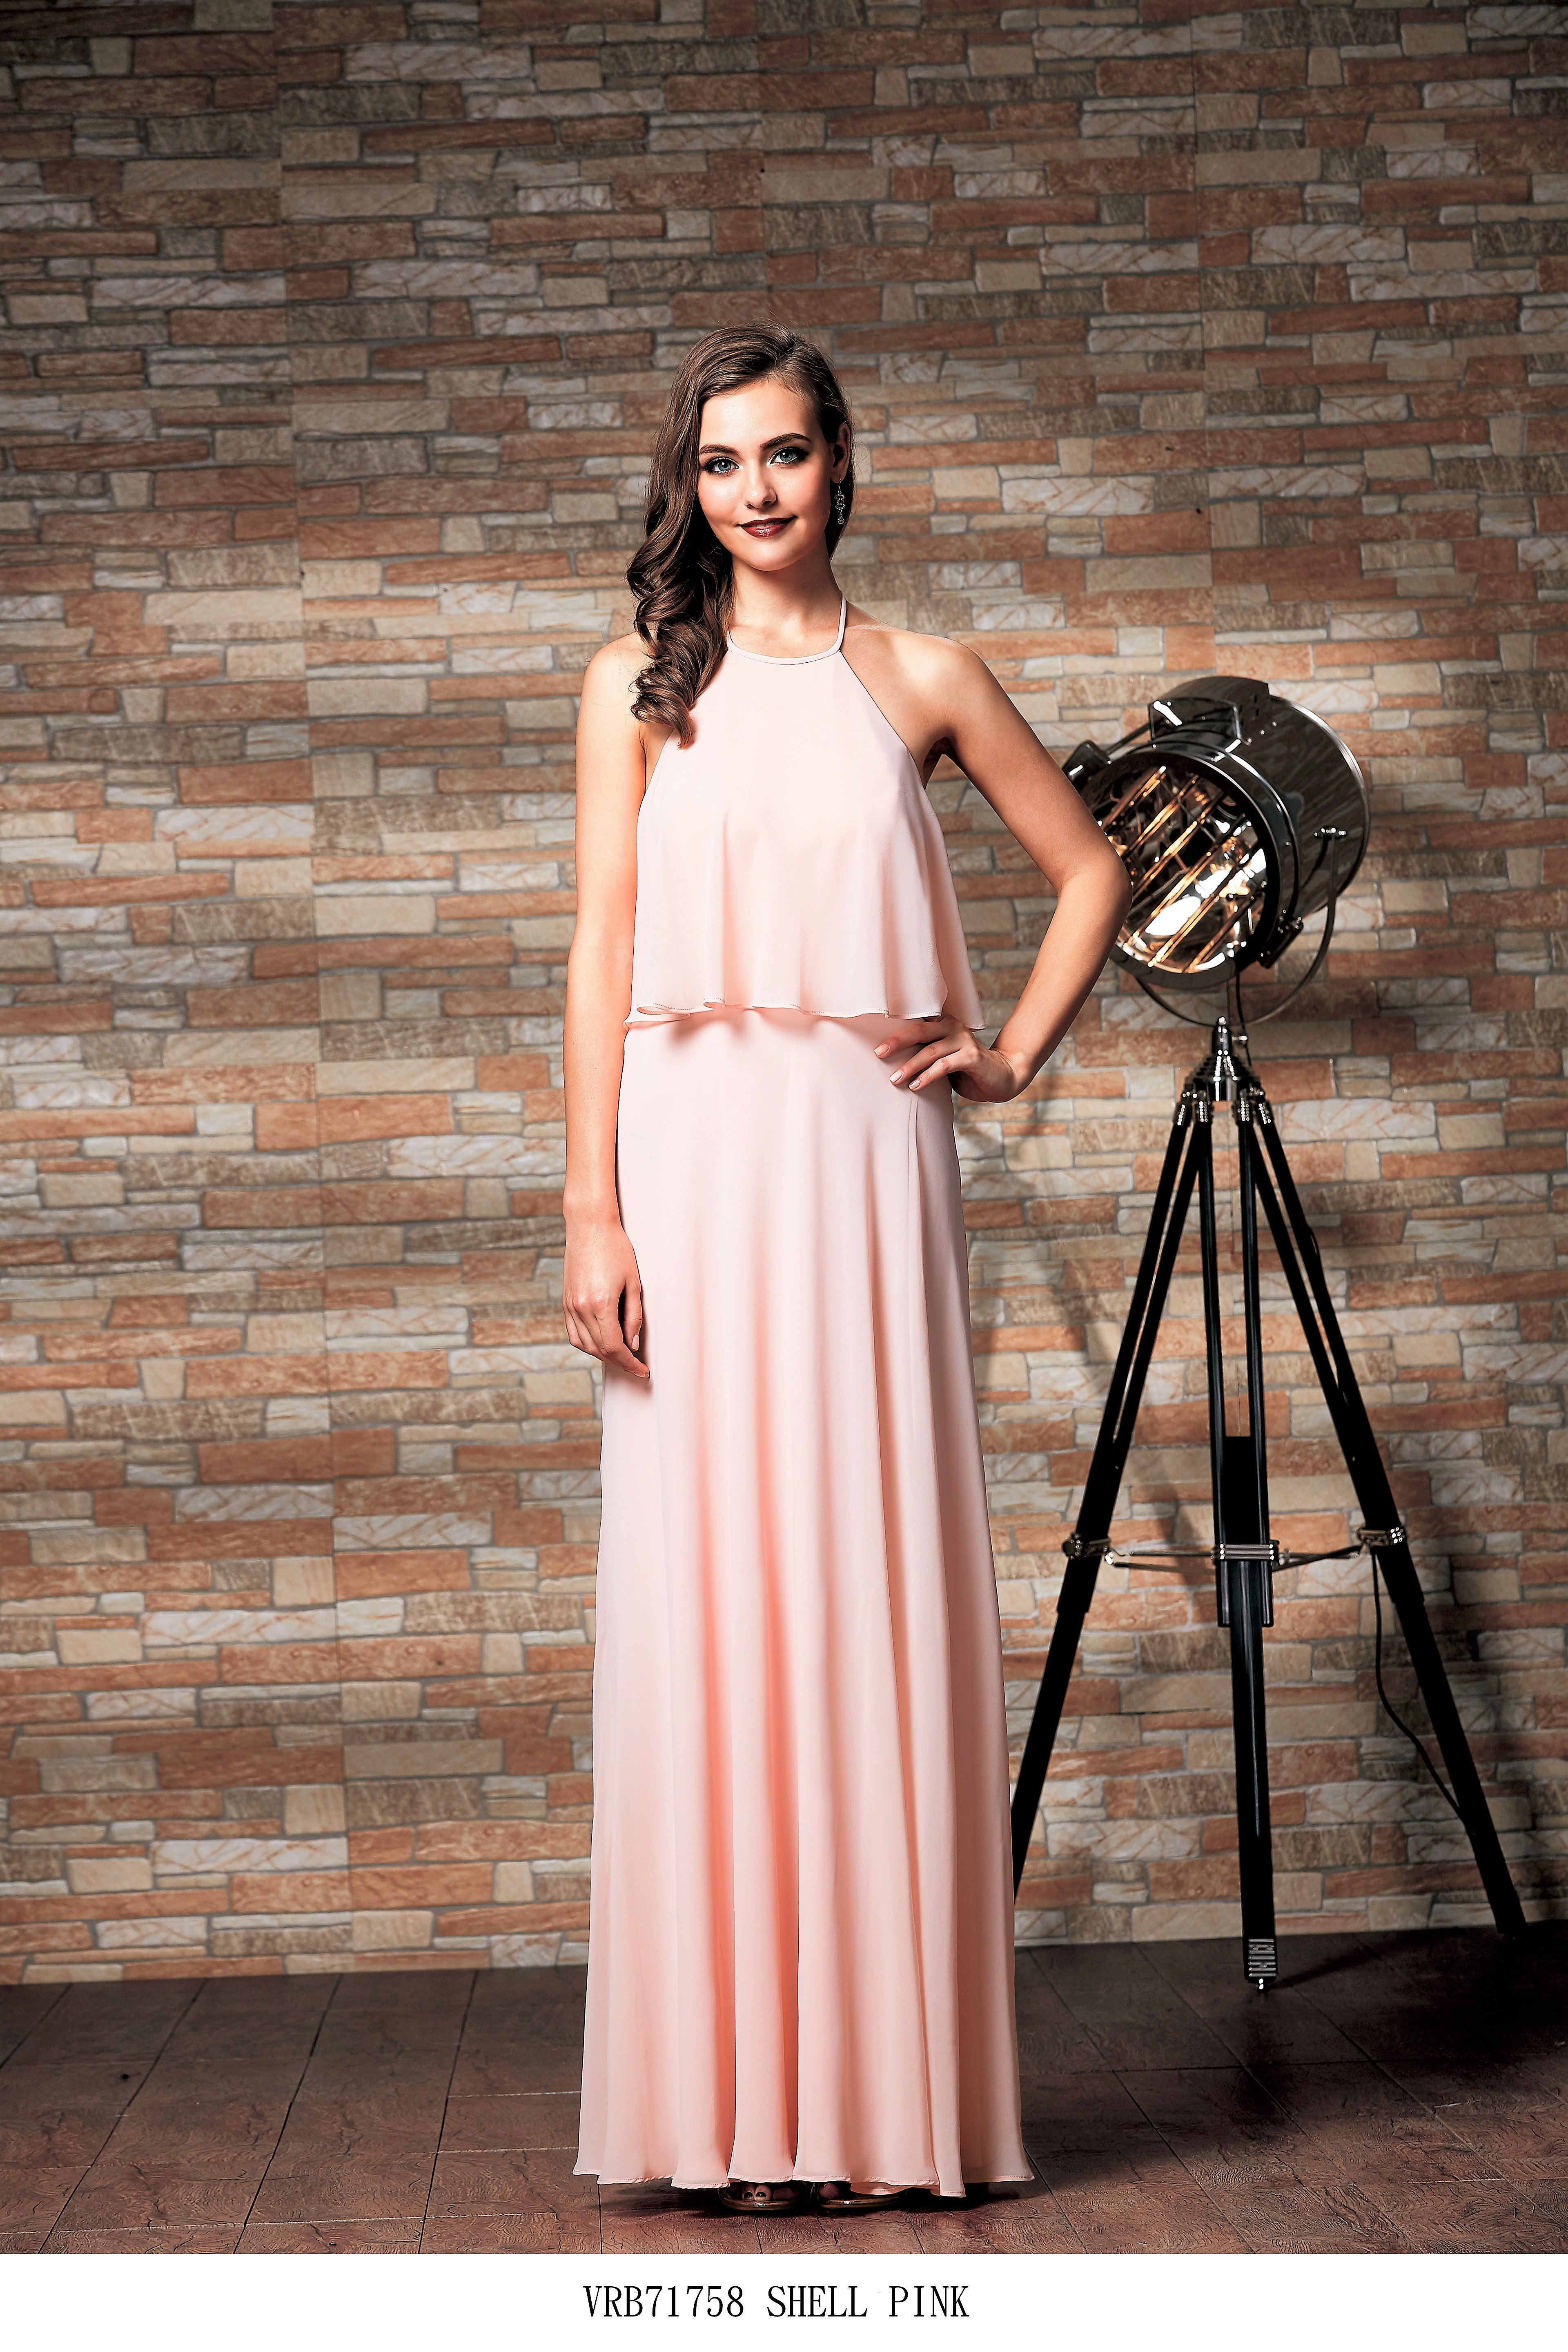 Venus Hi Neck chiffon bridesmaid dress